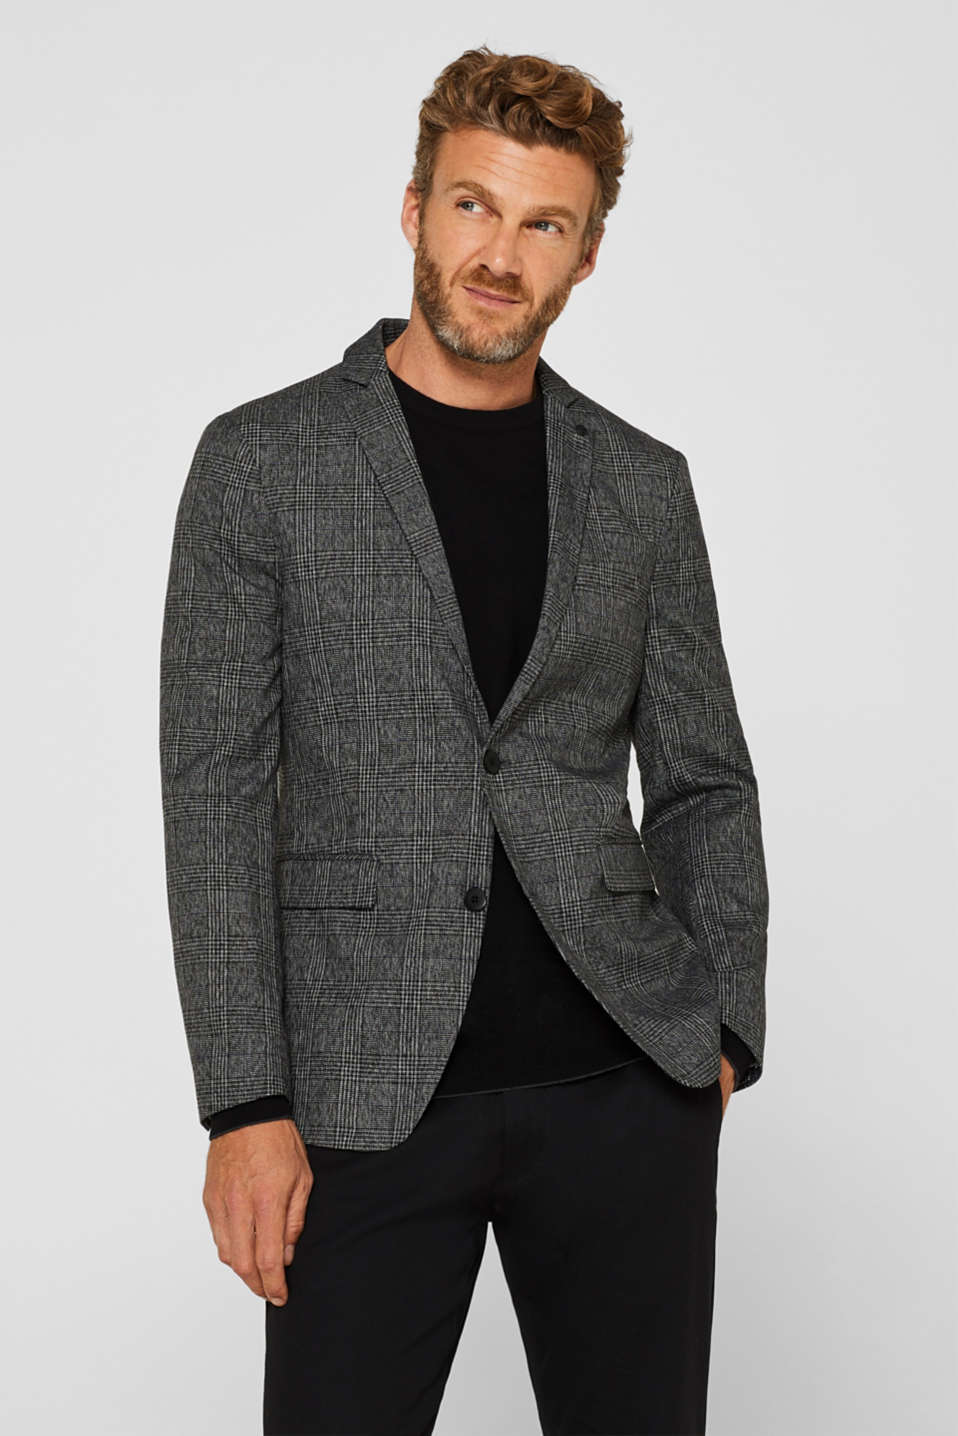 Esprit - Sports jacket with a Prince of Wales check pattern